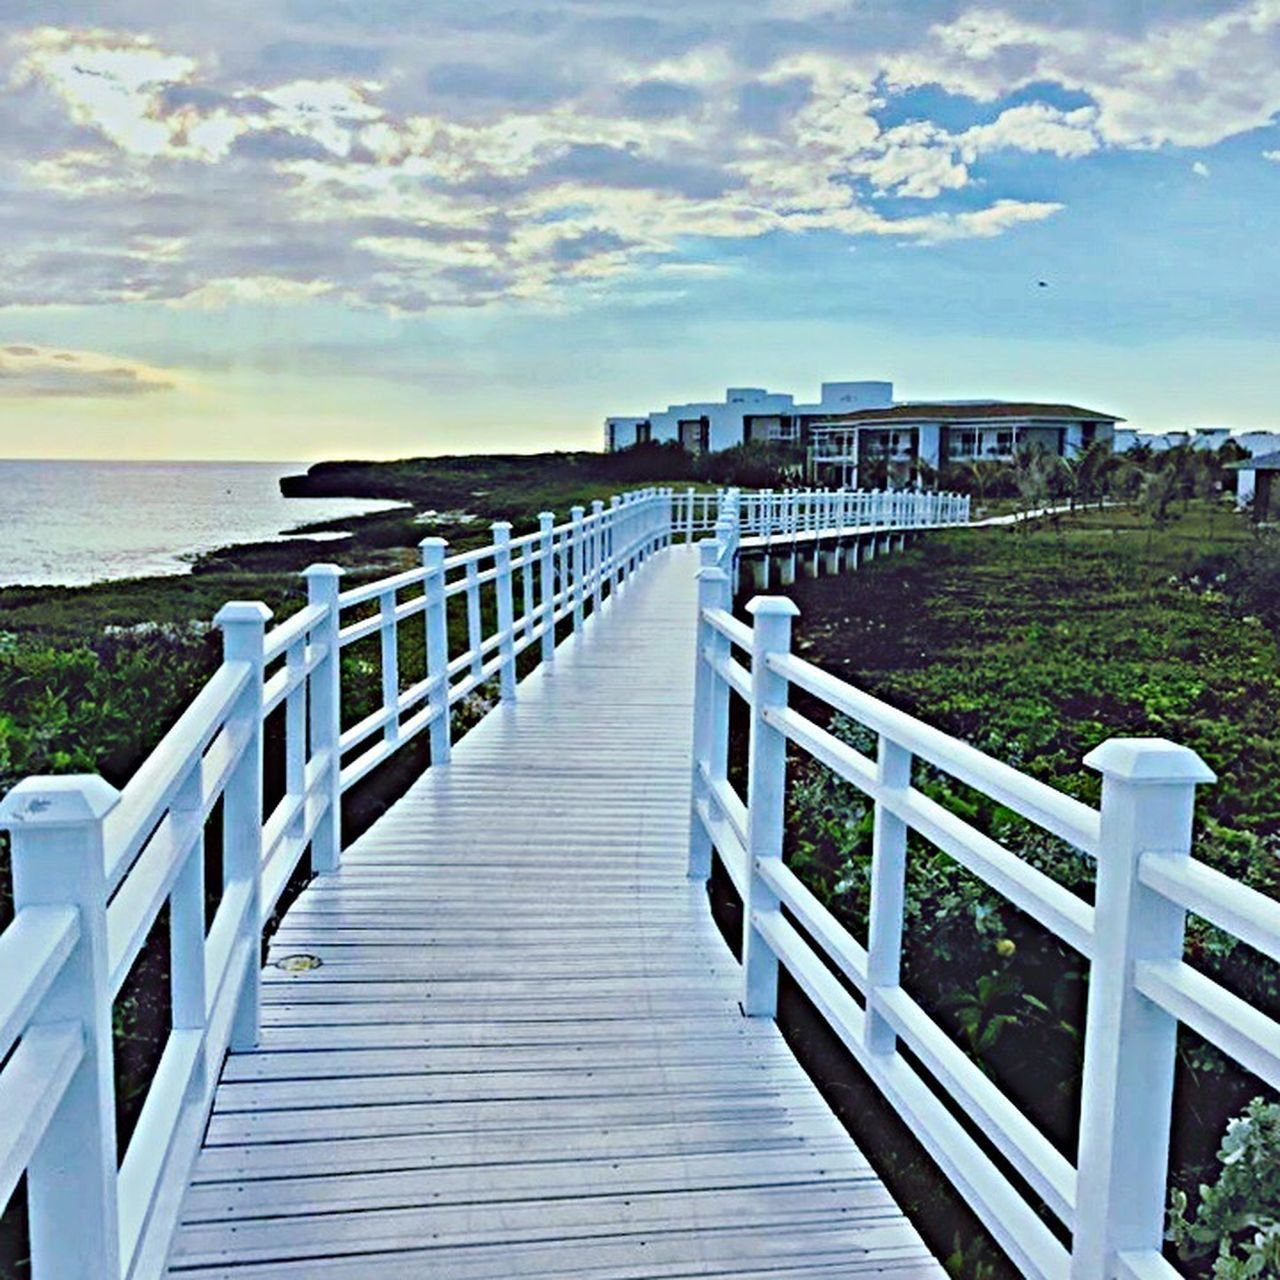 sea, railing, sky, cloud - sky, horizon over water, water, outdoors, built structure, nature, day, scenics, tranquil scene, tranquility, no people, beach, beauty in nature, architecture